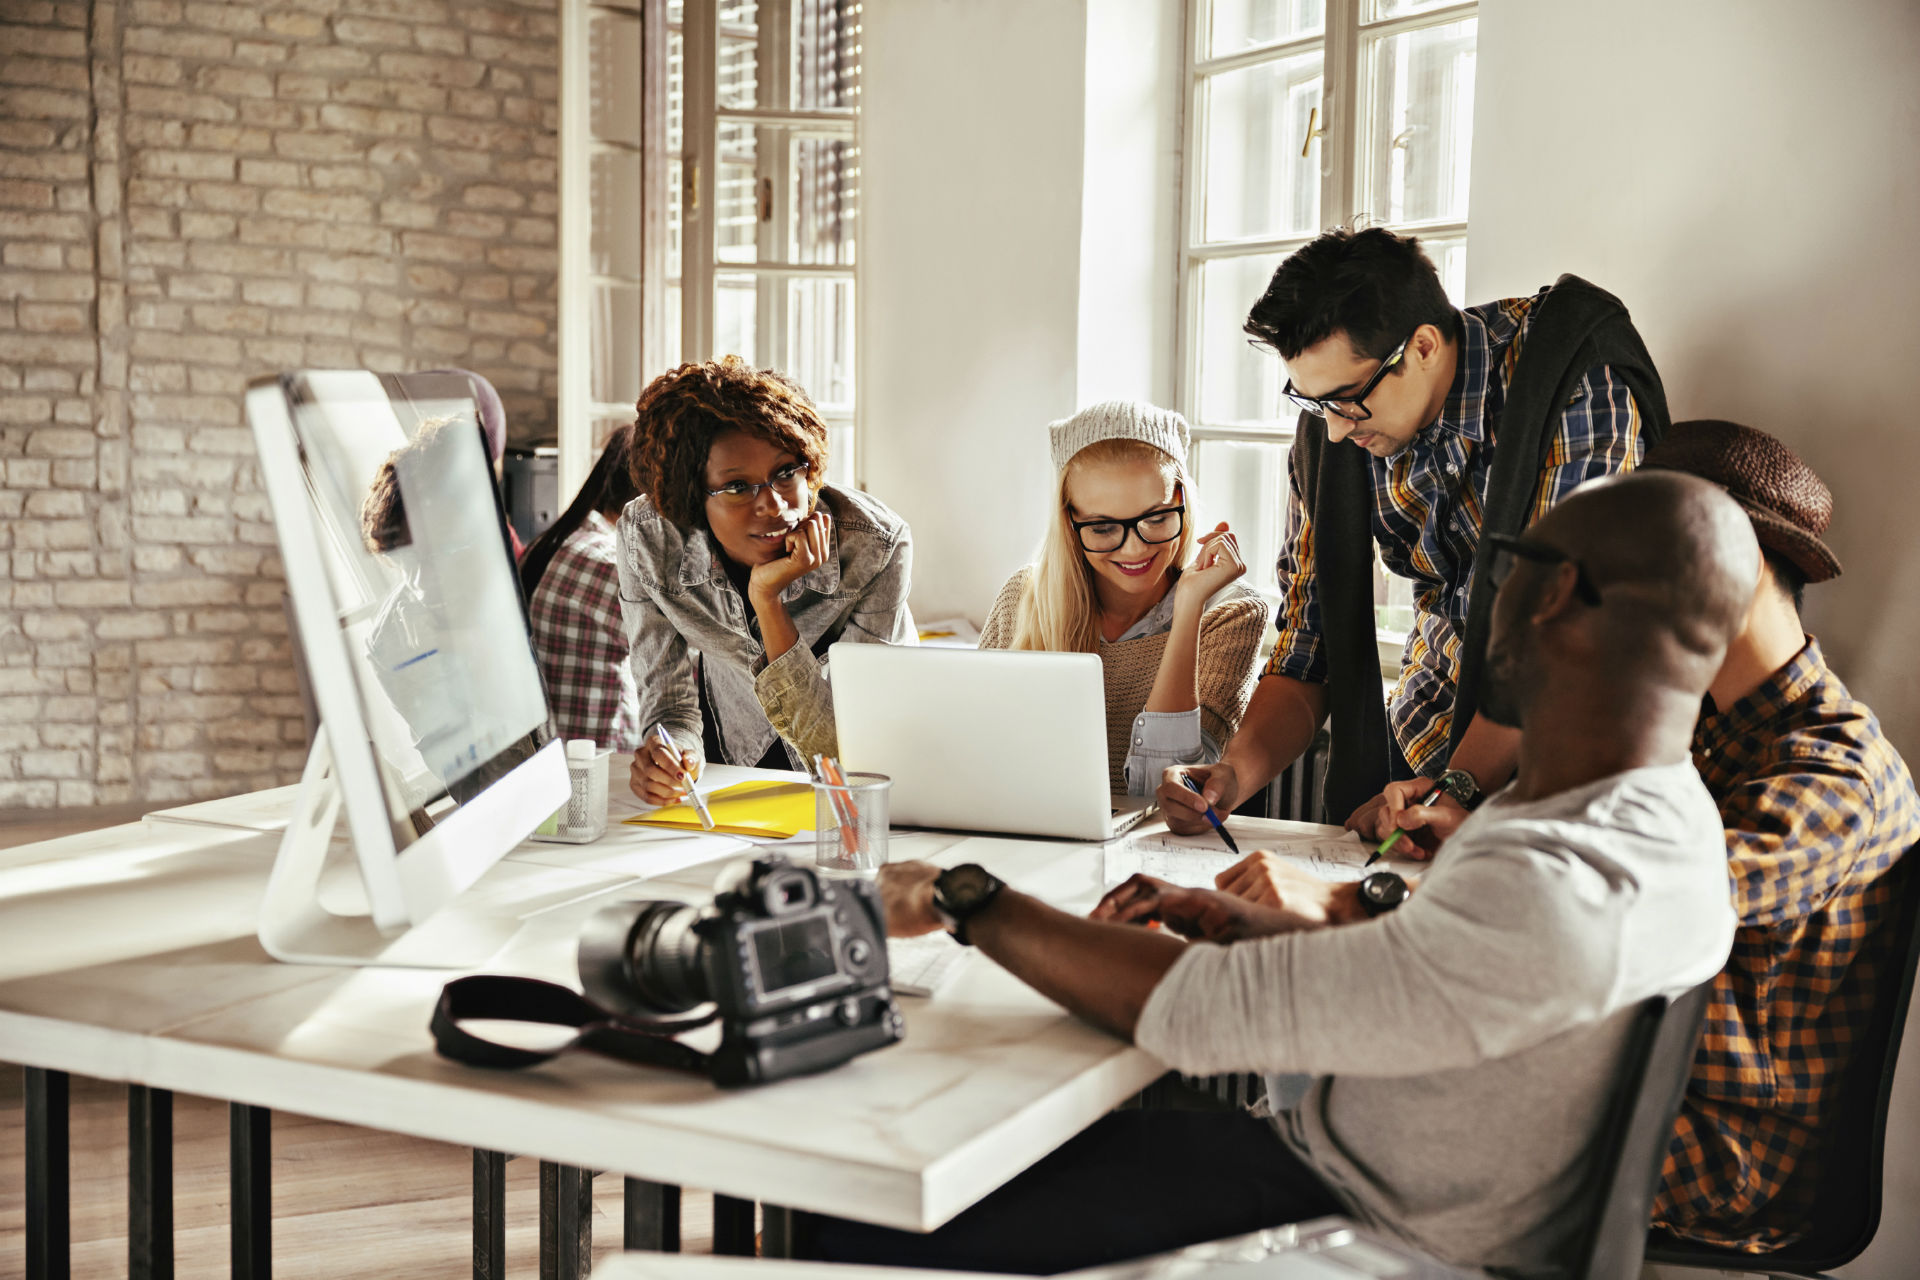 Established Businesses Could Learn Something from Start-Ups